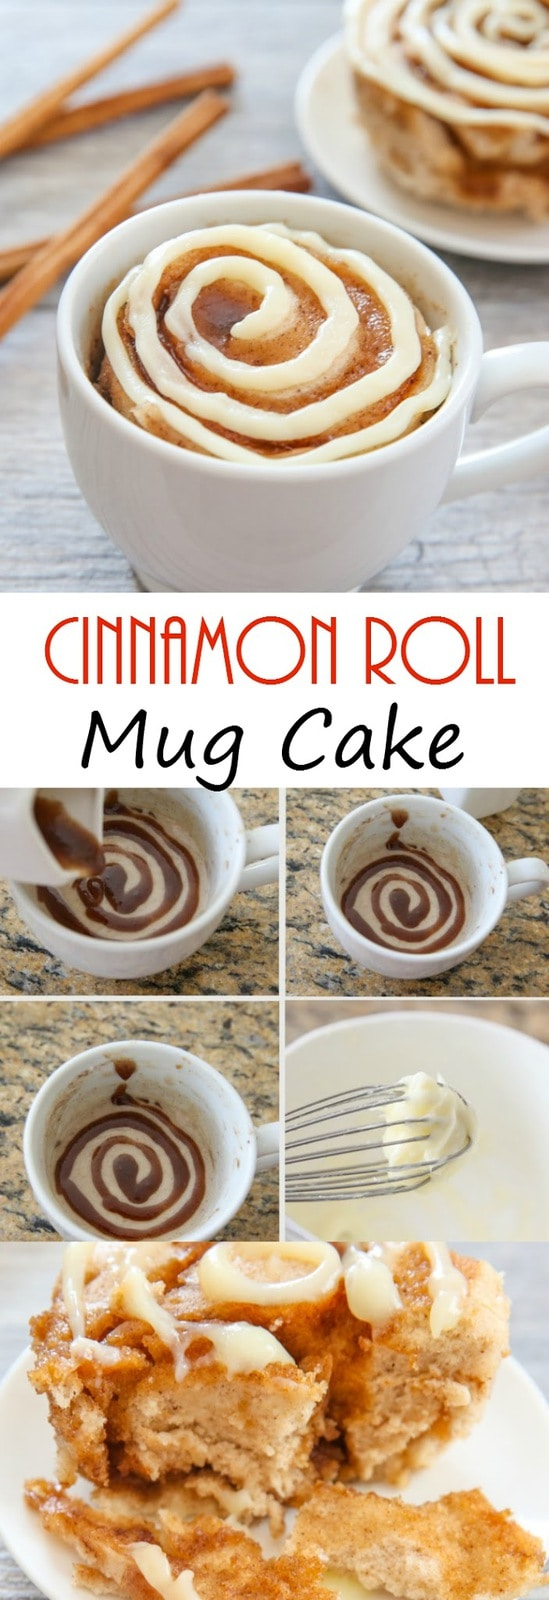 Cinnamon Roll Mug Cake. A fun, single serving microwave cake.